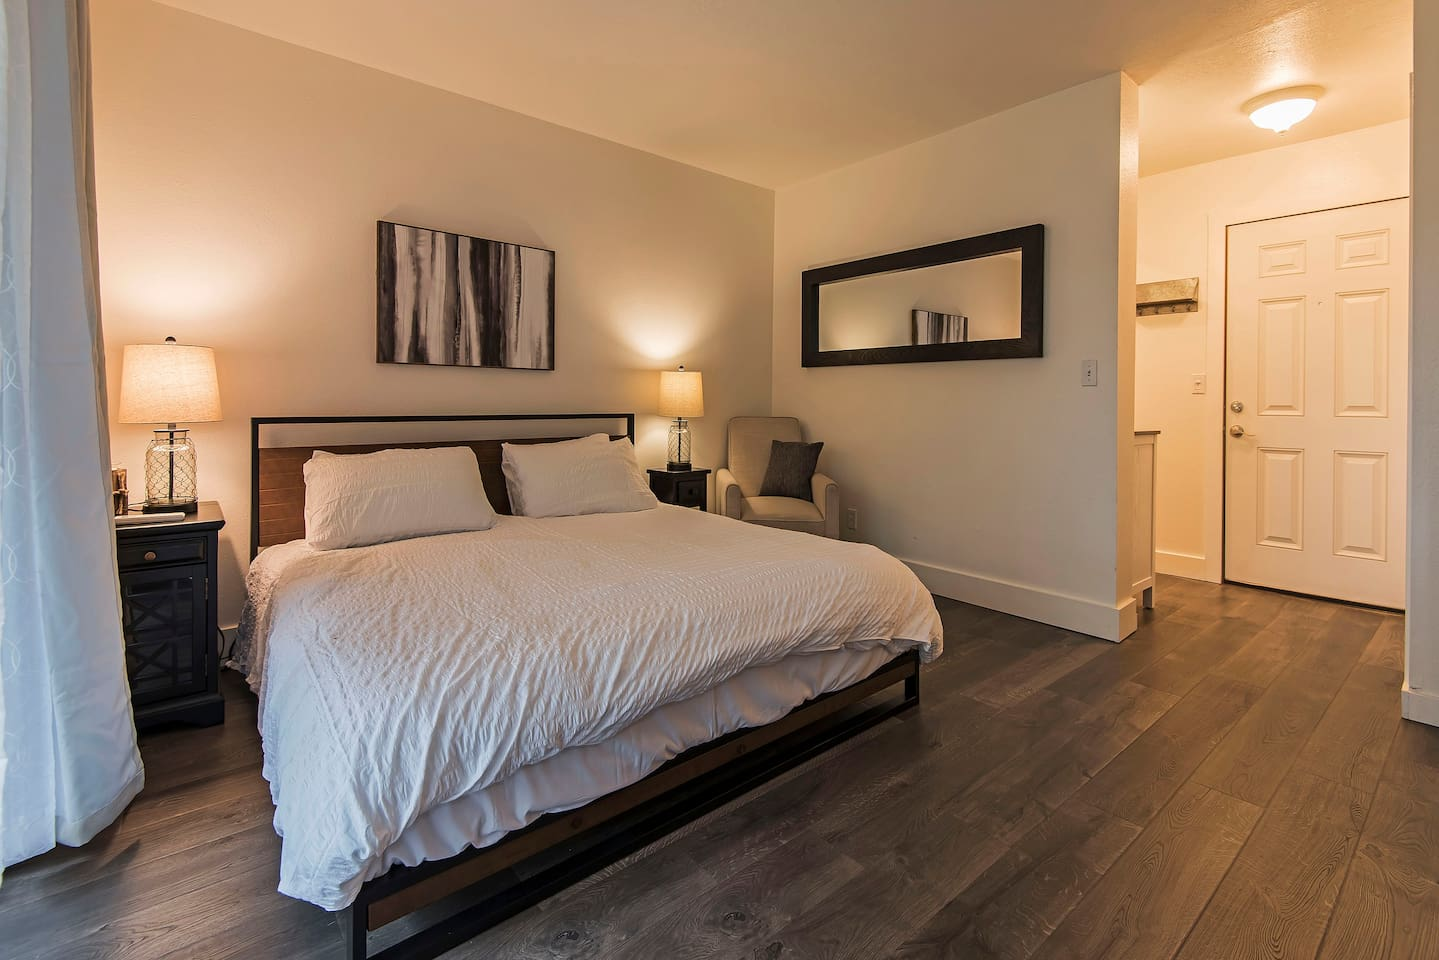 King size bed with Private full bath and balcony. Perfect place to relax at the end of a fun filled day.